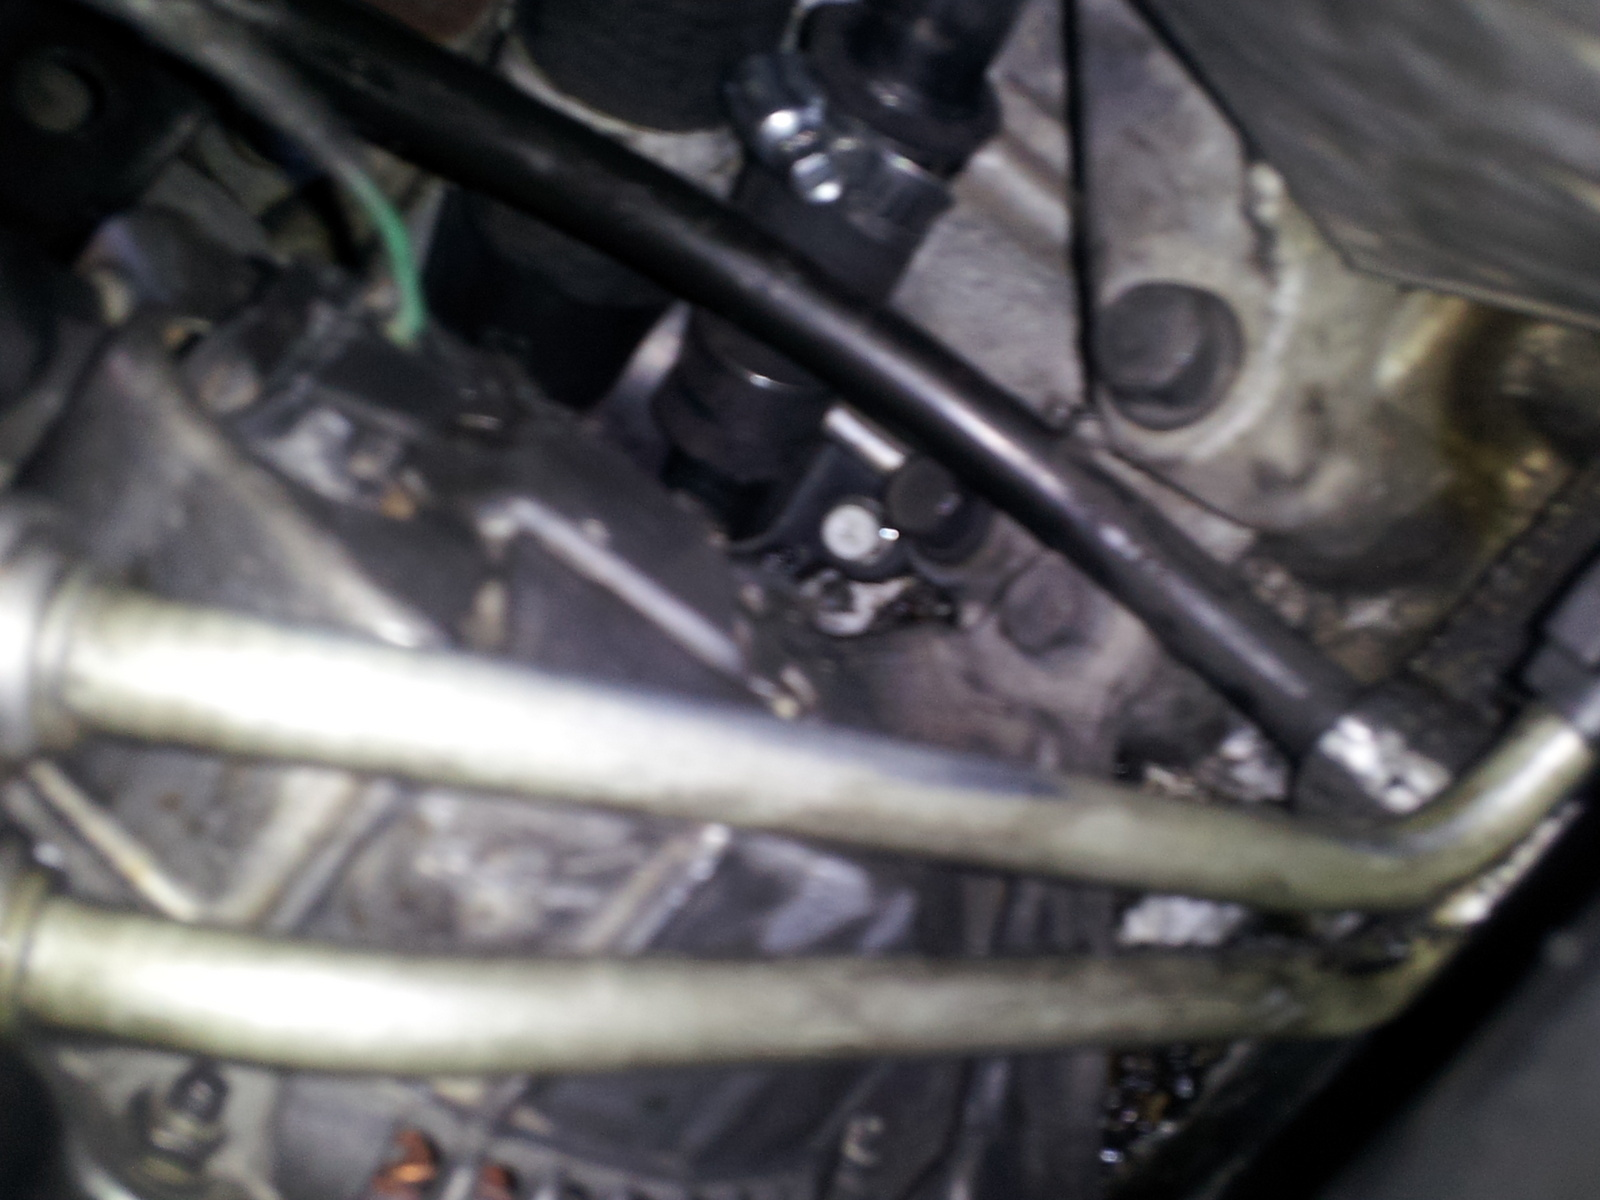 95 Dodge Intrepid Engine Diagram Wiring Library 1995 Ford Taurus Cooling System 27 Have A Little Hole That Keeps Leaking Coolant From The Motor Its